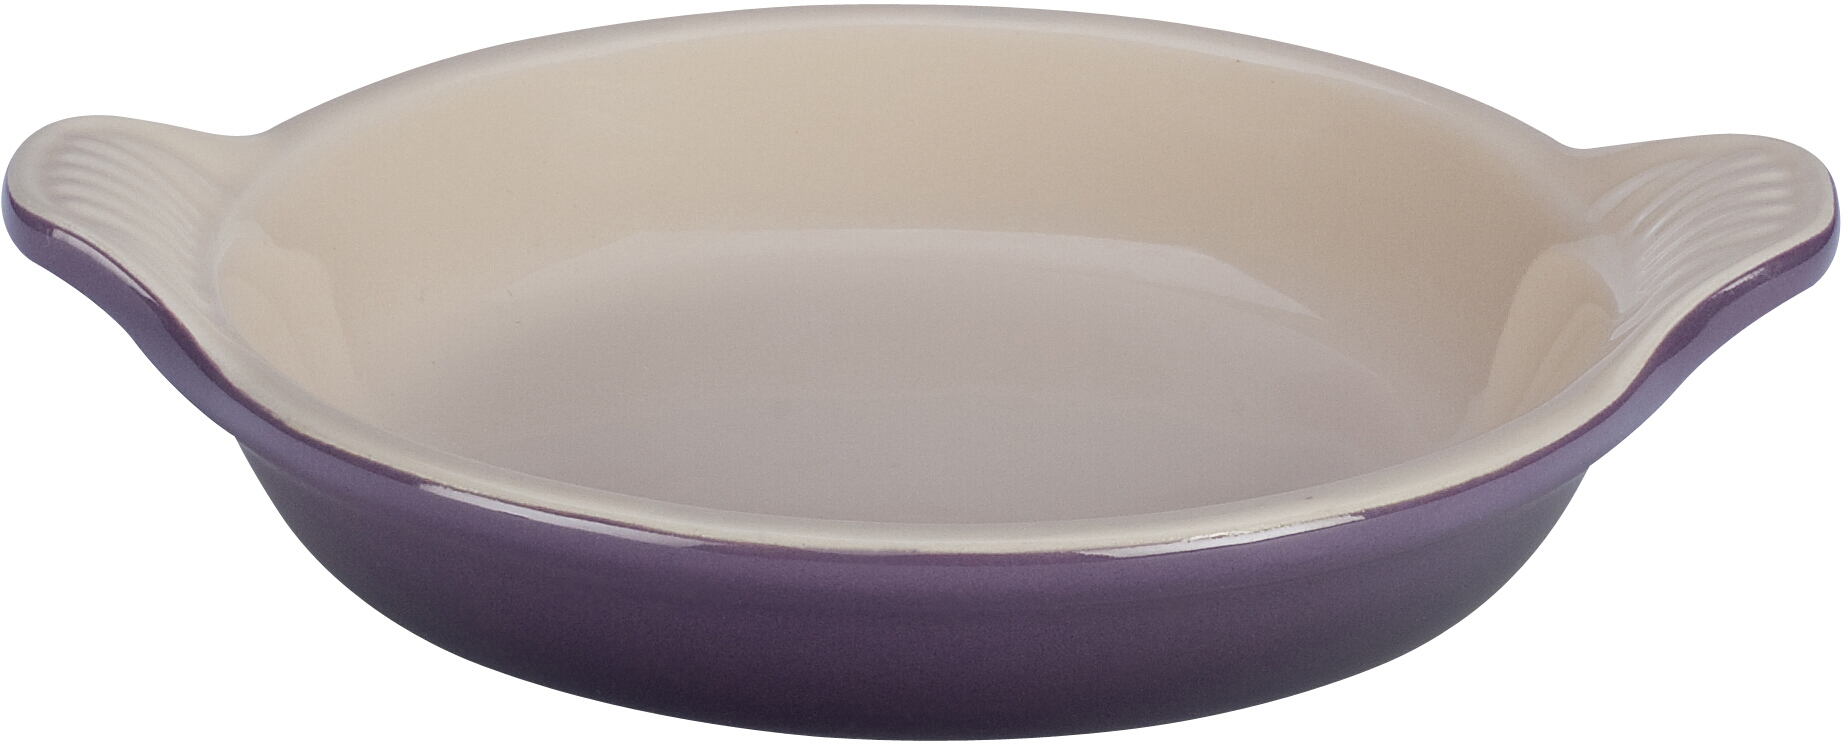 Le Creuset Cassis Stoneware Creme Brulee Dish, 7 Ounce